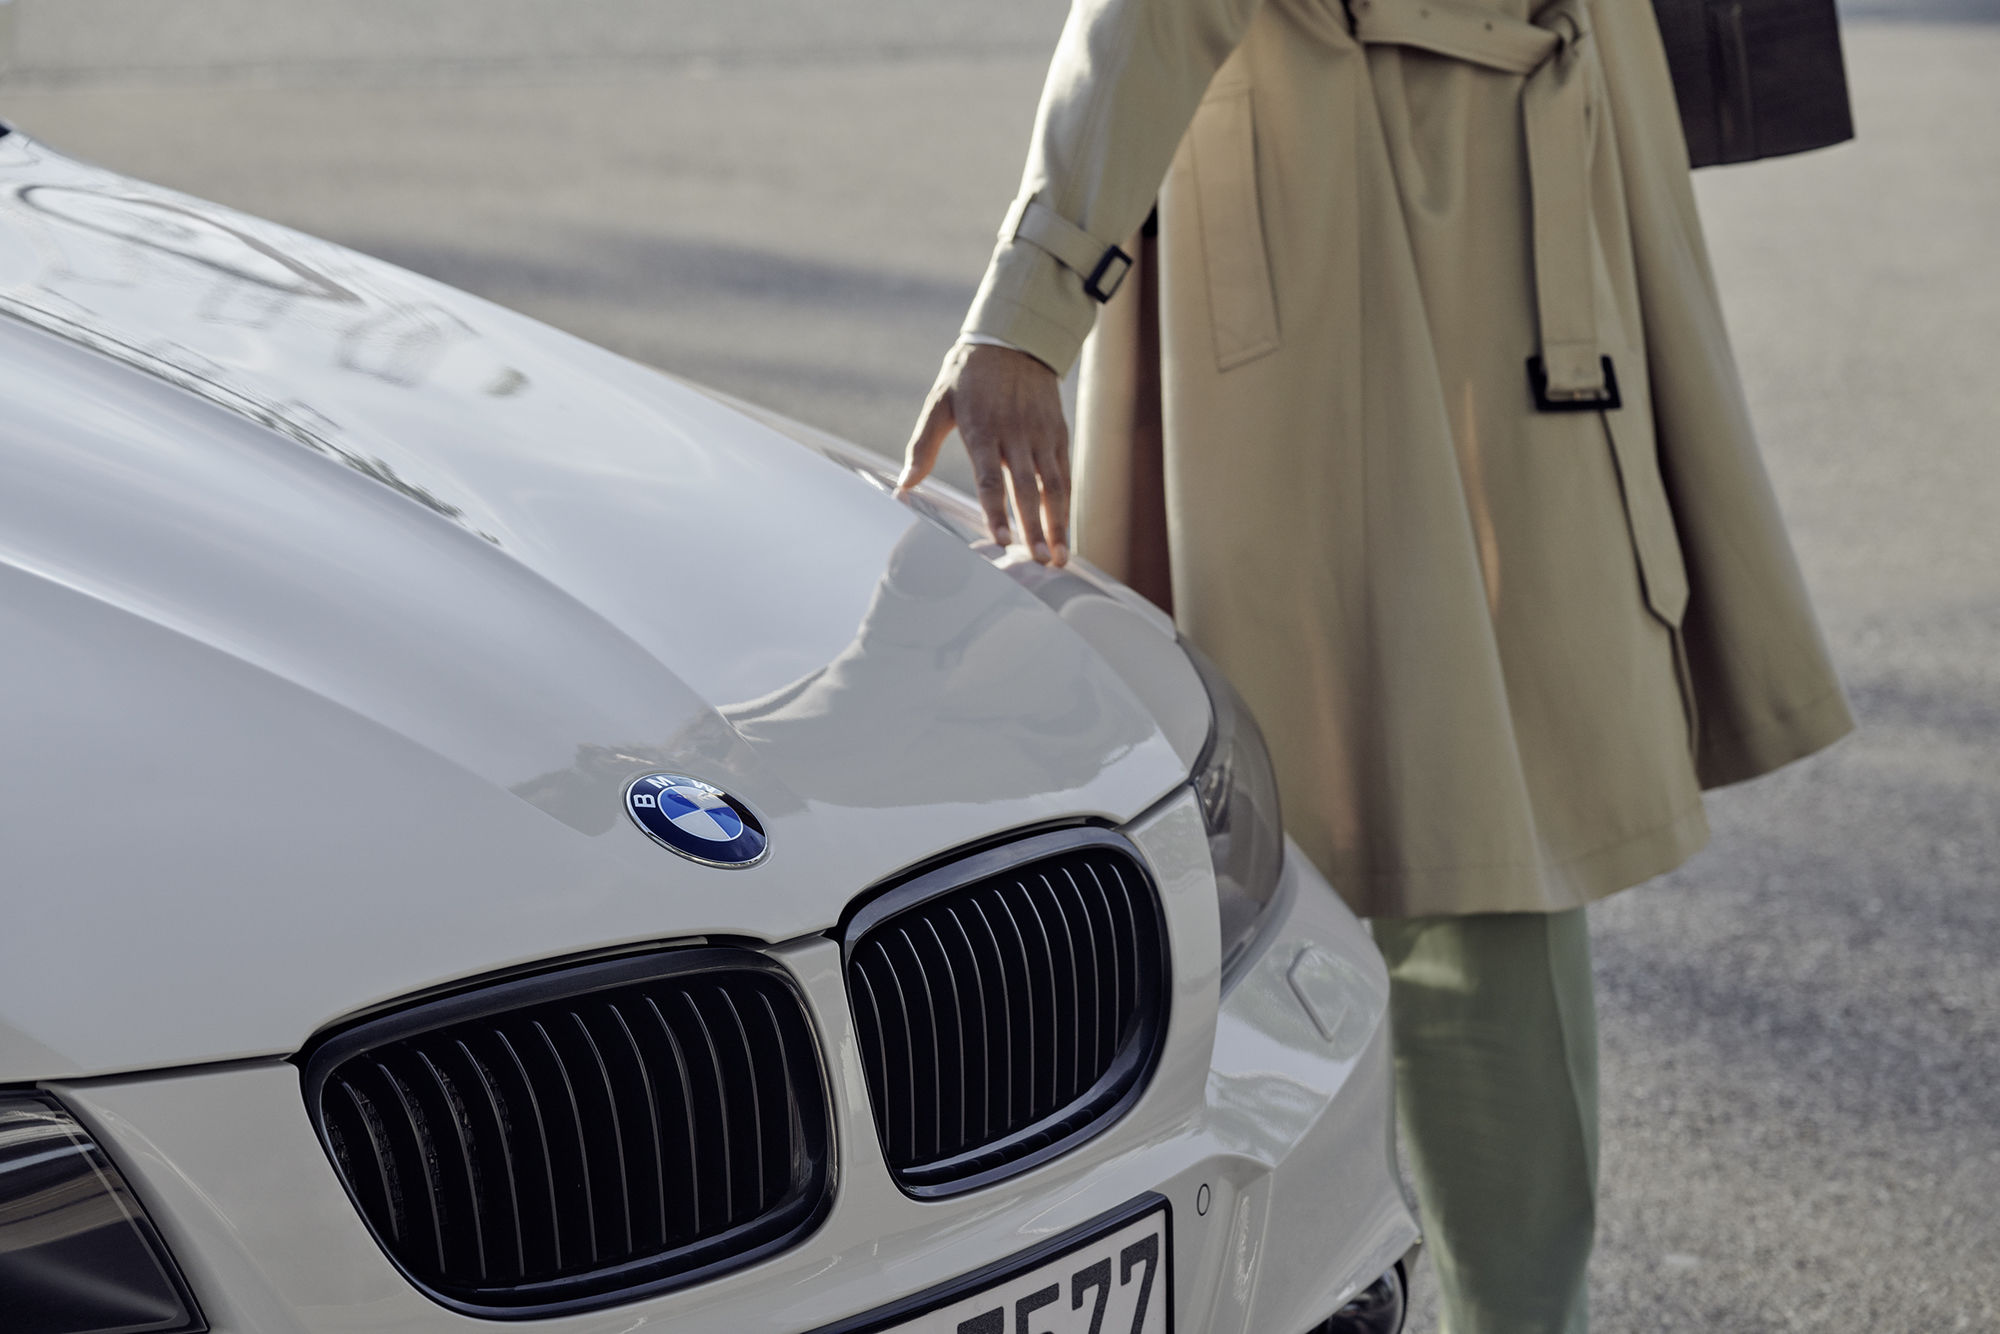 NEVEREST for BMW Aftersales Service